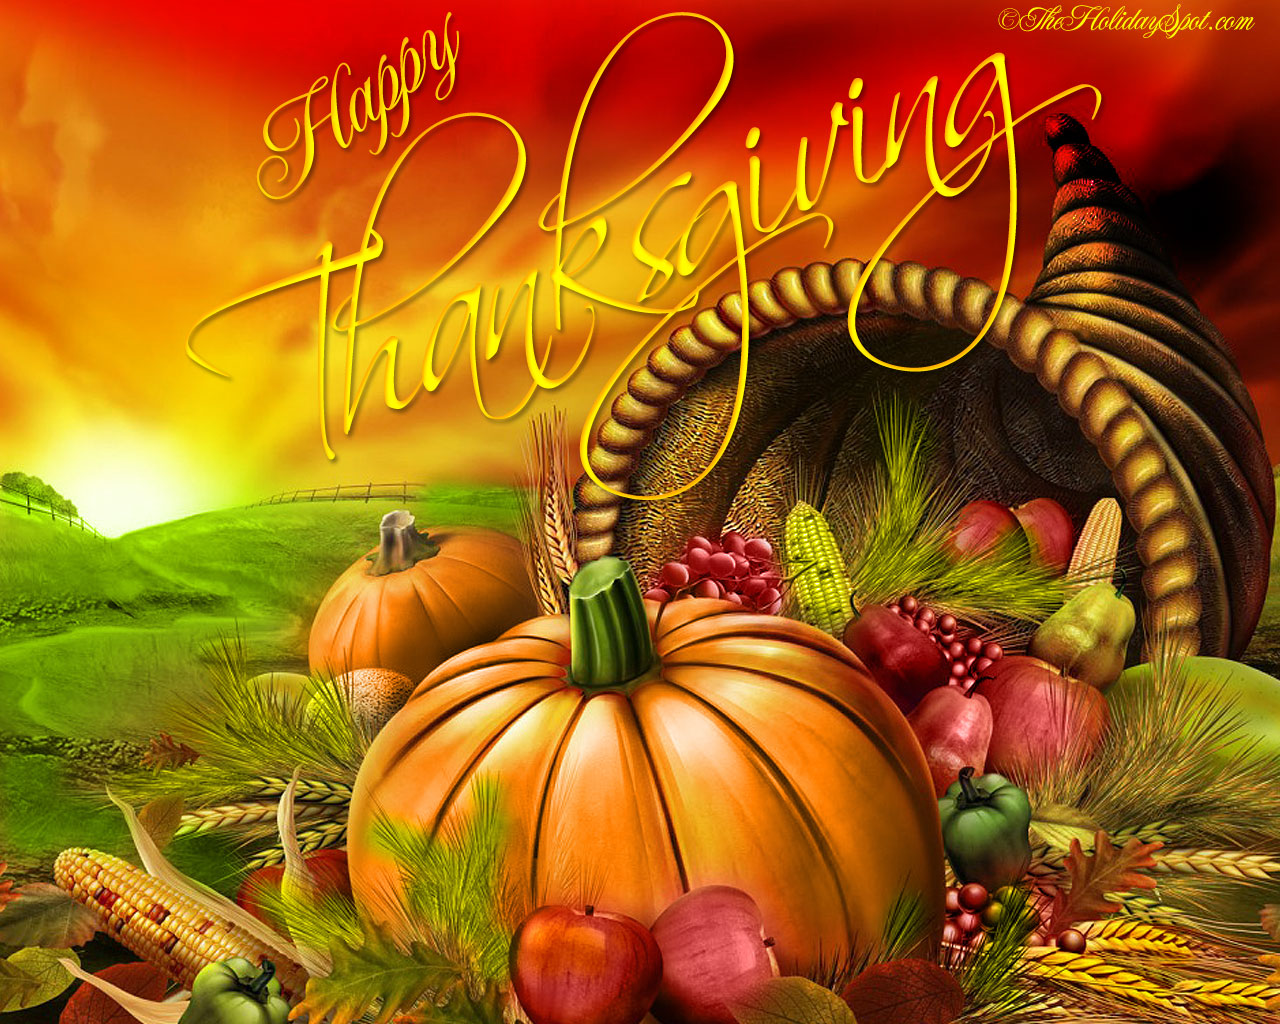 Wishes you a Happy Thanksgiving